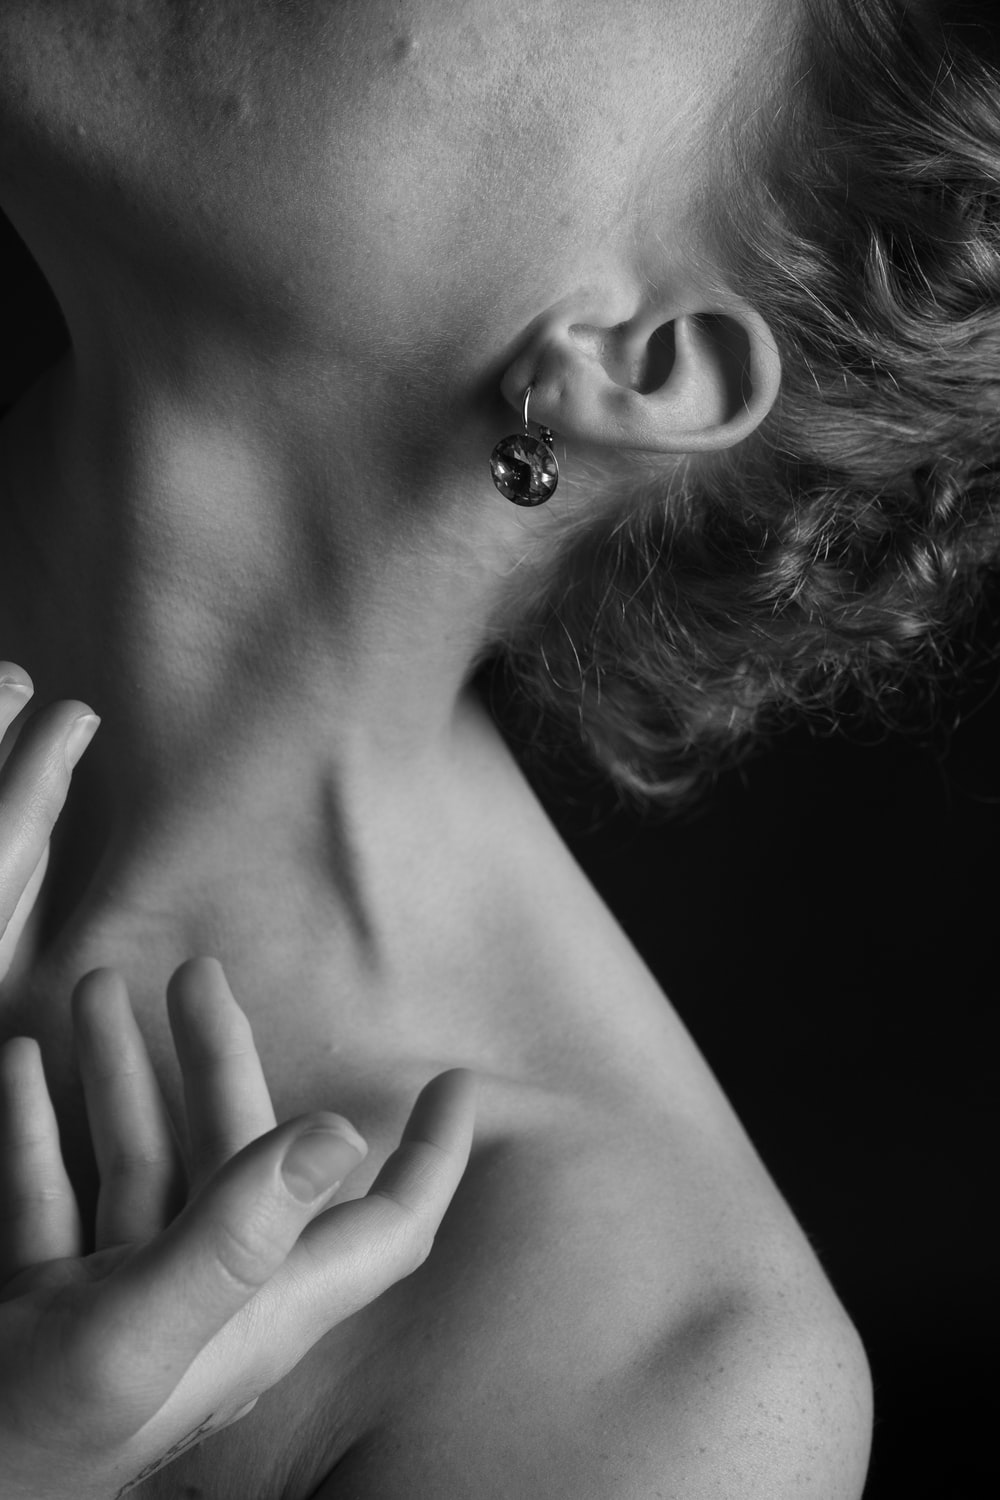 grayscale photography of topless person wearing earring